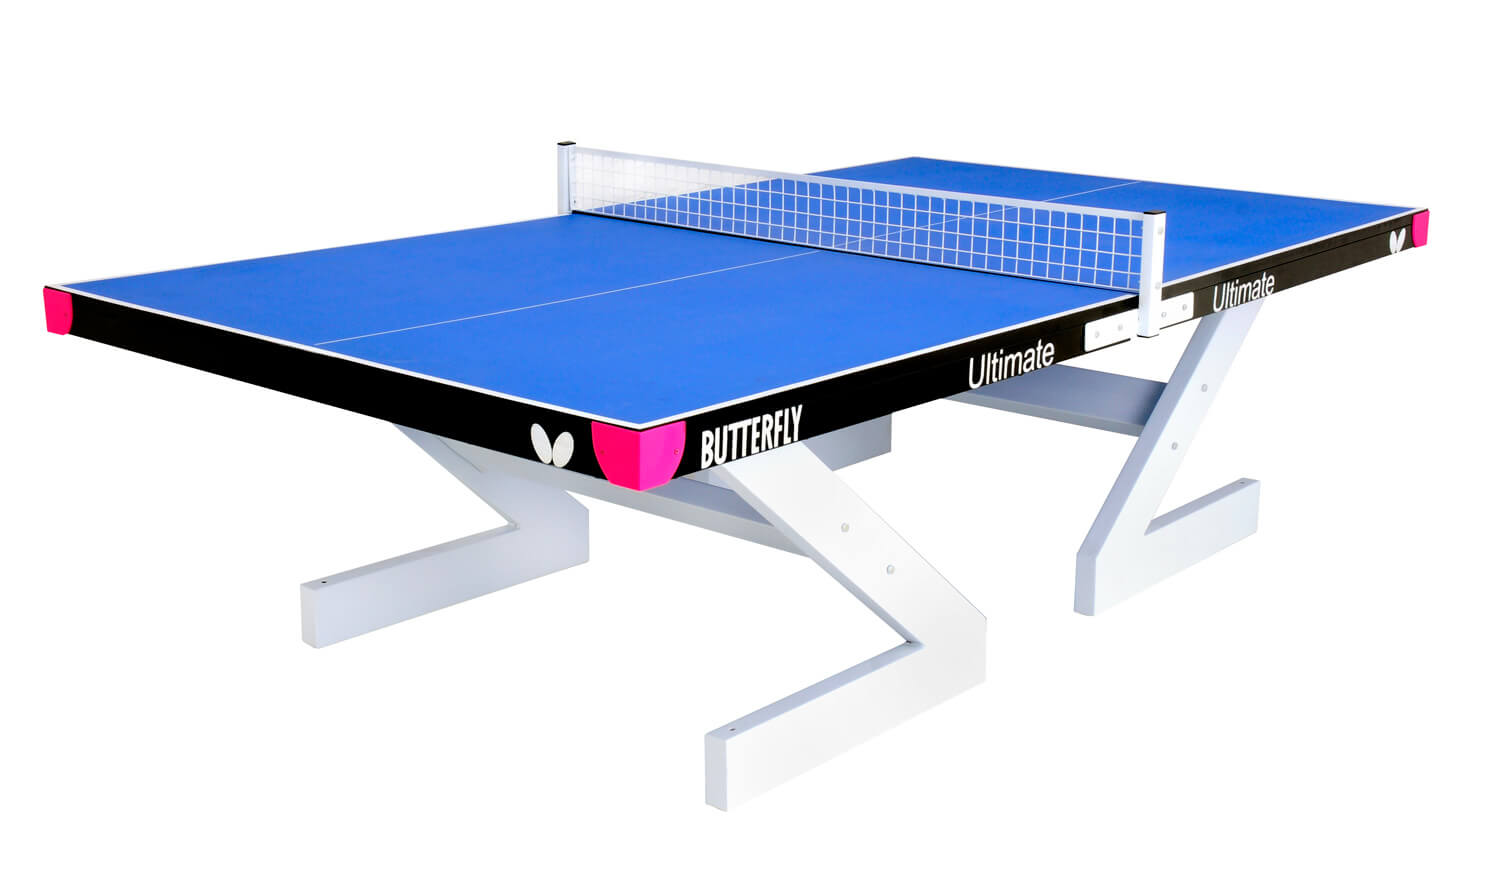 Butterfly ultimate outdoor table tennis liberty games - Weatherproof table tennis table ...